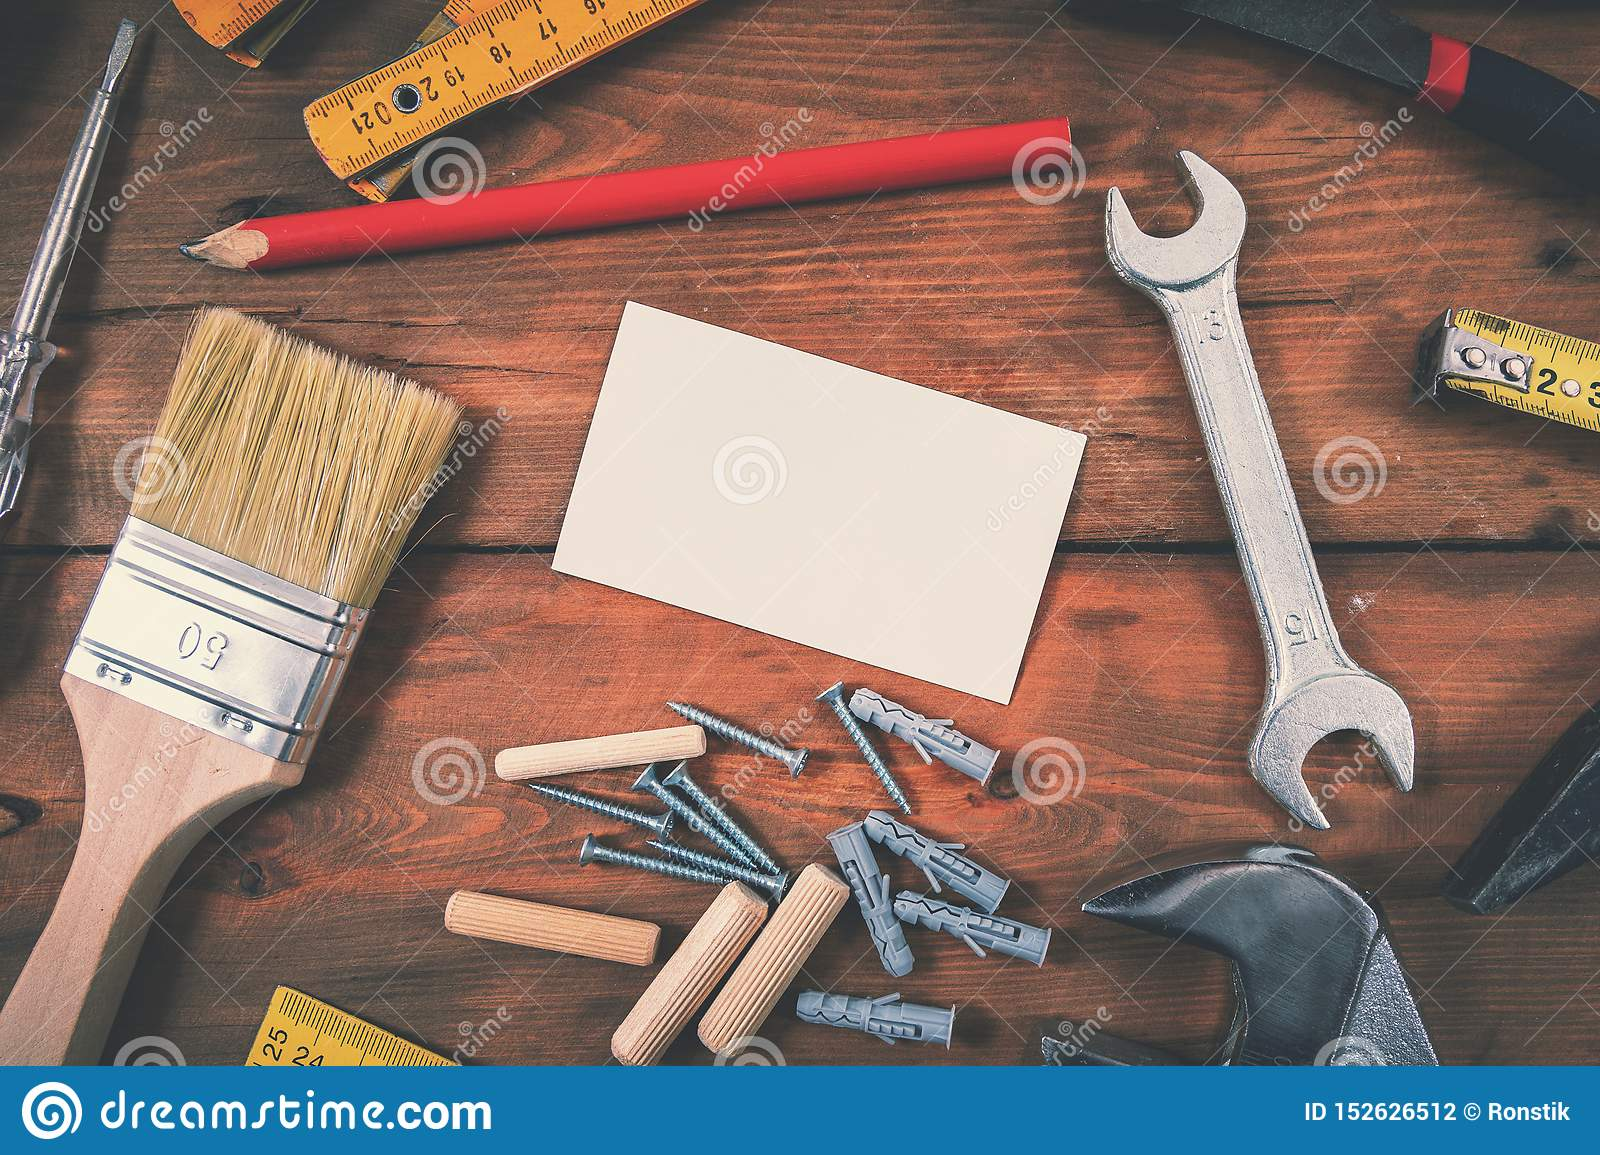 Handyman services home repair - blank business card with construction tools on wooden background